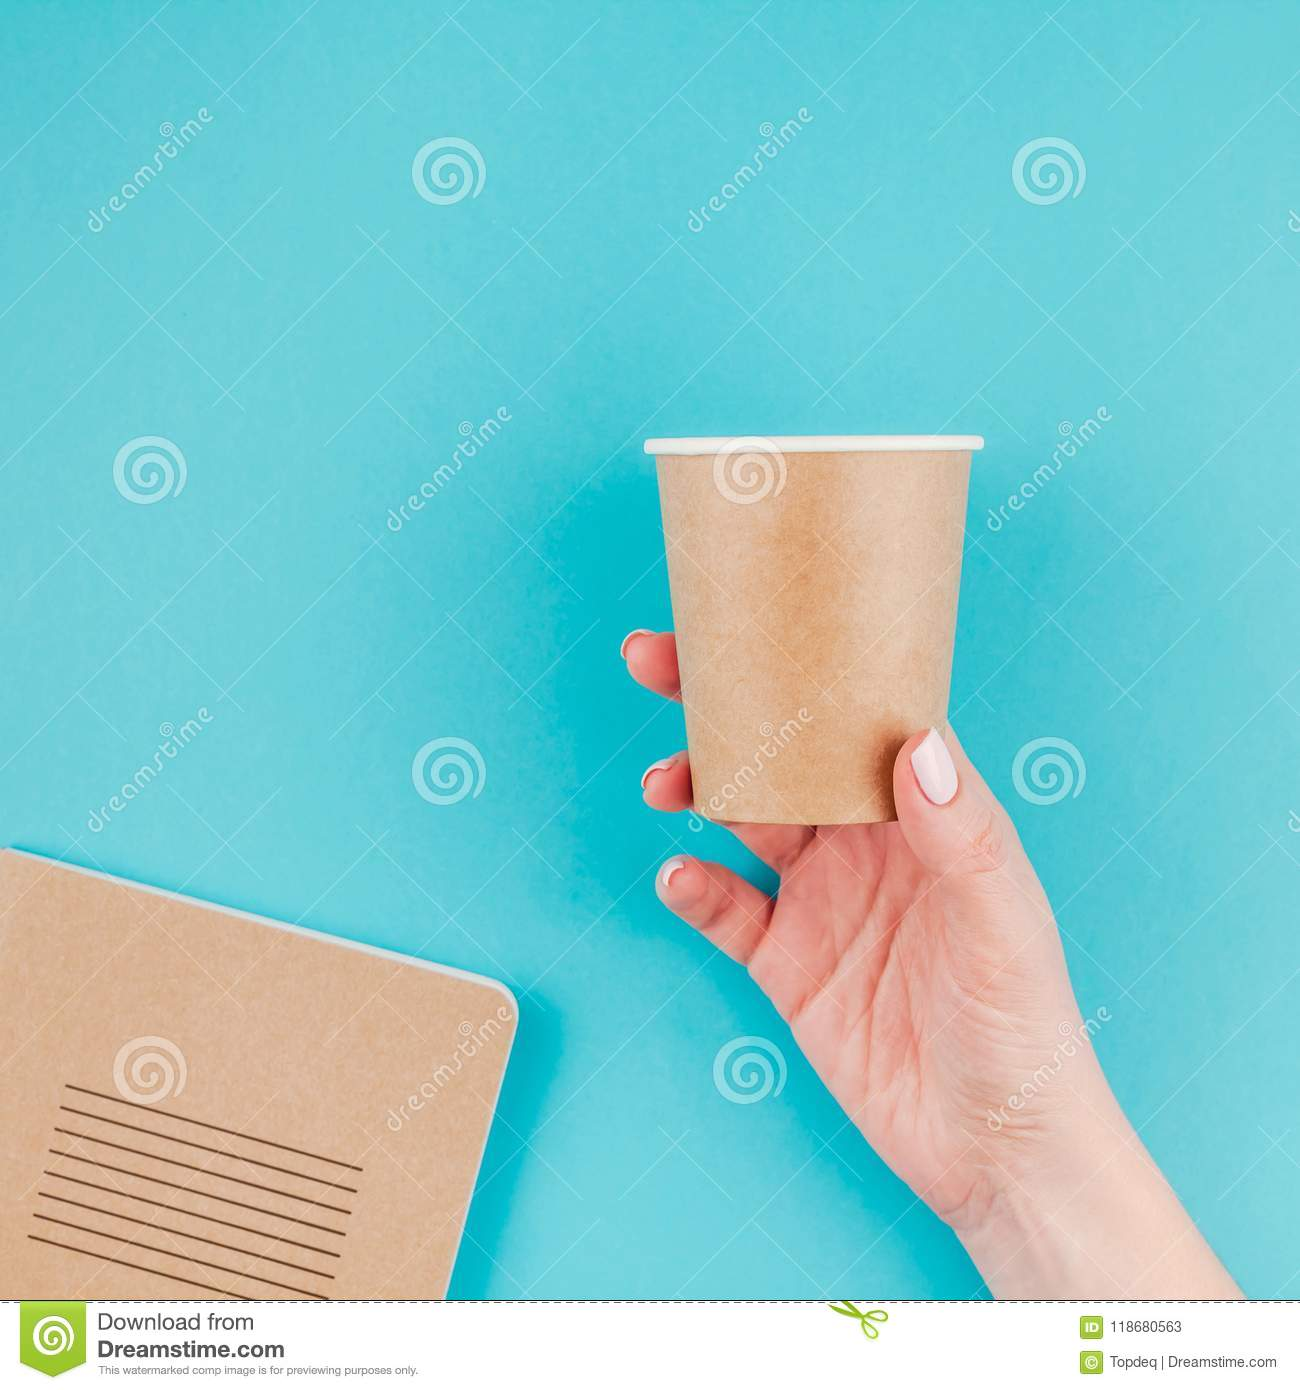 Creative Flat Lay Of Woman Hand Holding Craft Paper Coffee Cup And Notebook Diary With Copy Space On Turquoise Background In Minimalism Style